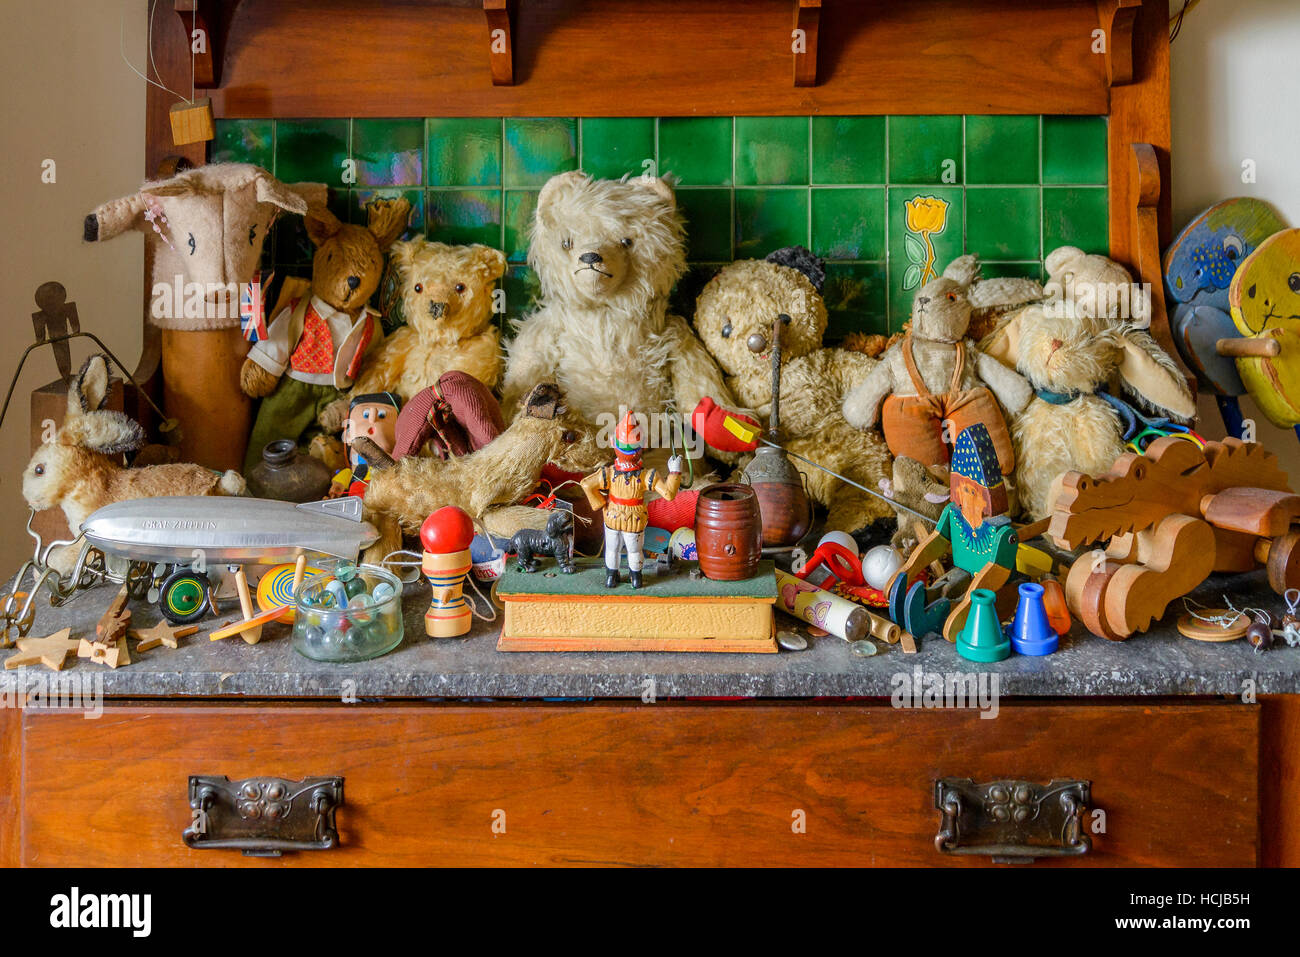 toy collection - Stock Image